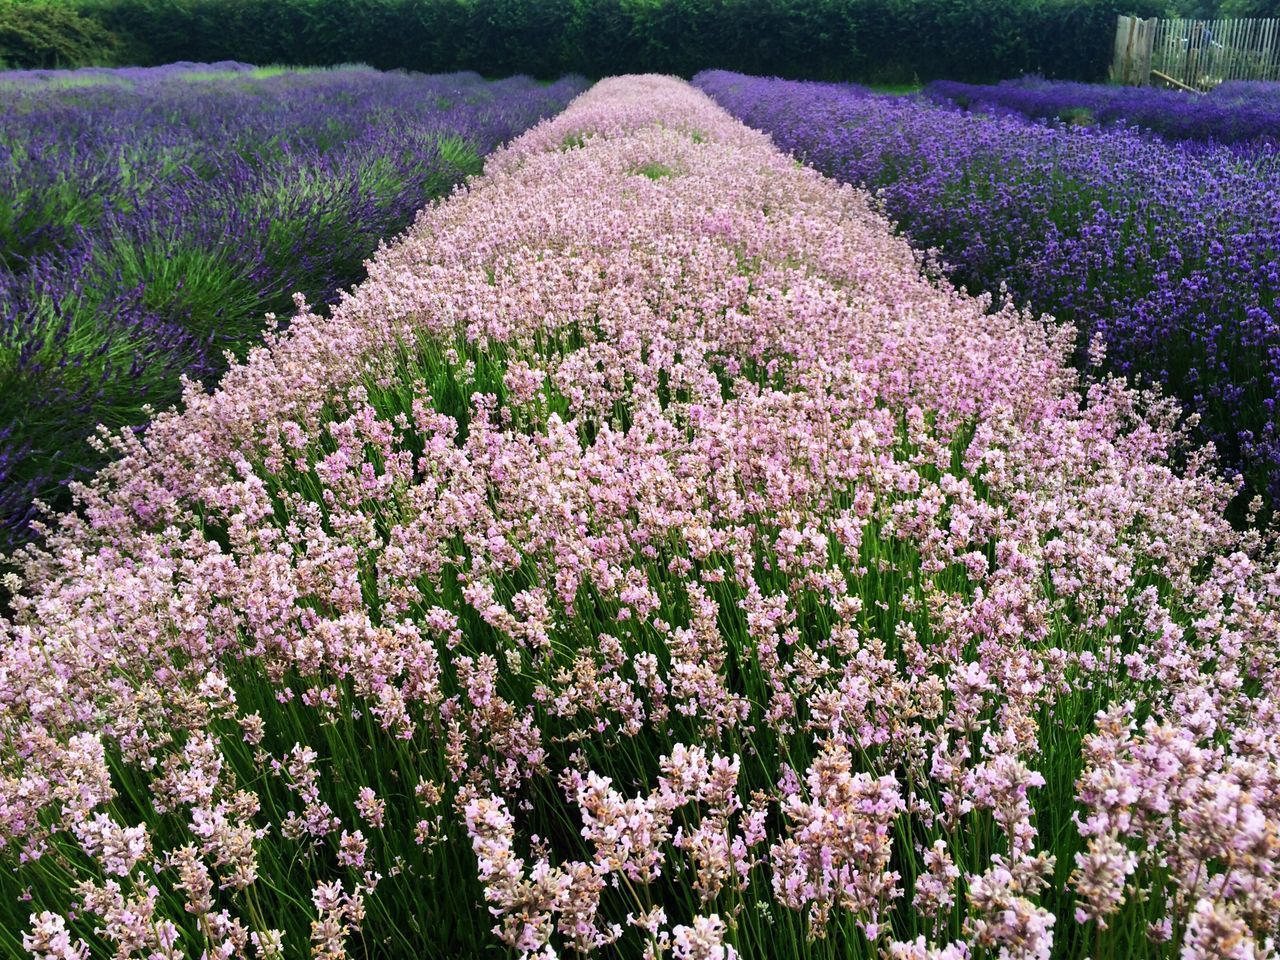 flower, purple, beauty in nature, nature, lavender colored, lavender, fragility, field, blossom, no people, growth, freshness, tranquility, plant, scenics, springtime, outdoors, landscape, day, flowerbed, perfume, flower head